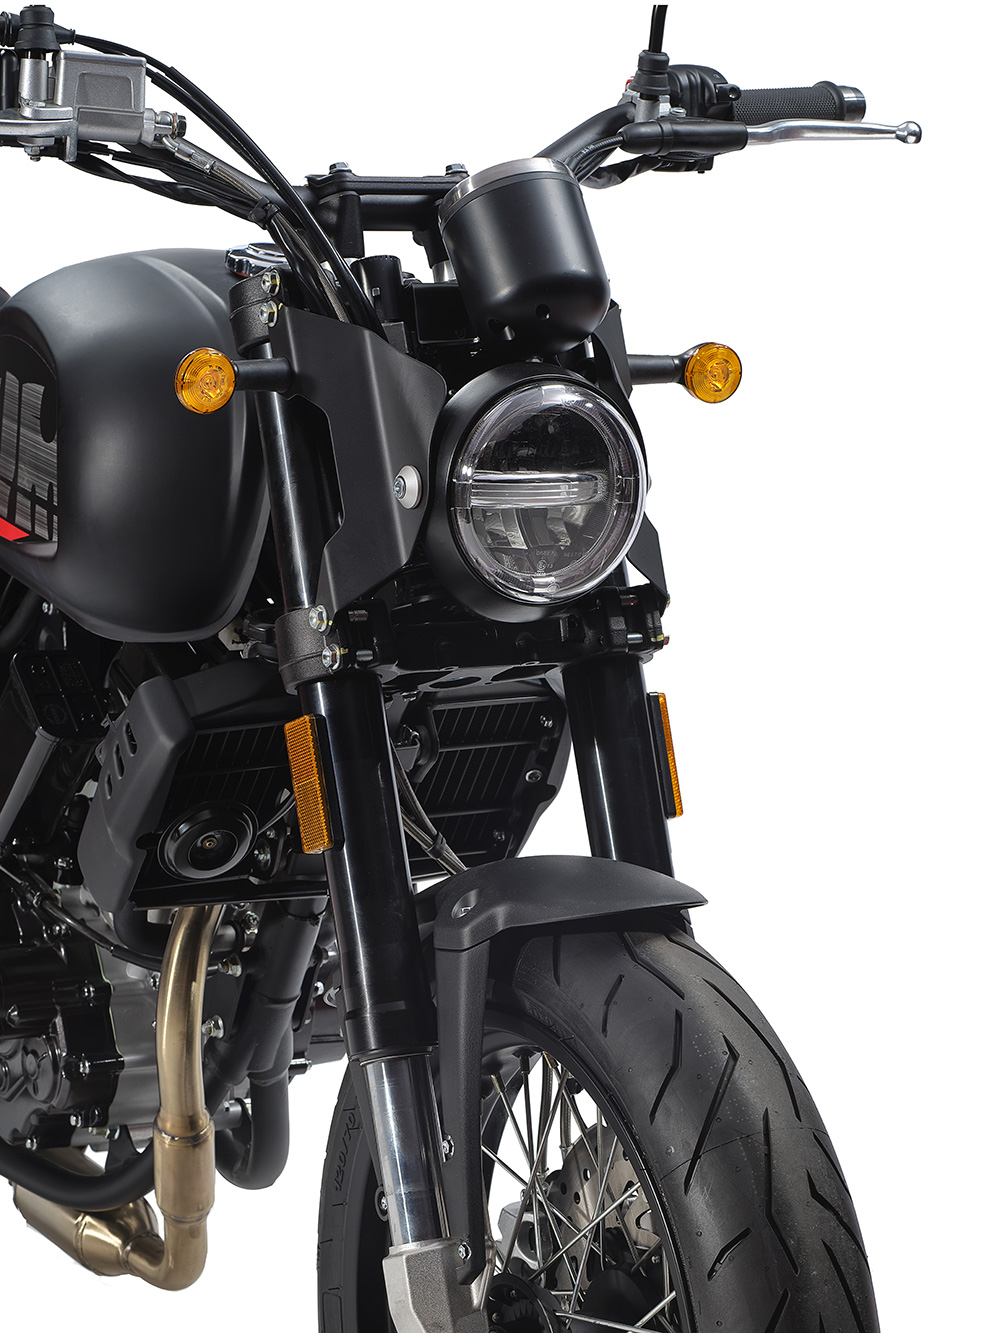 Swm Motorcycles Ace of Spade fronte